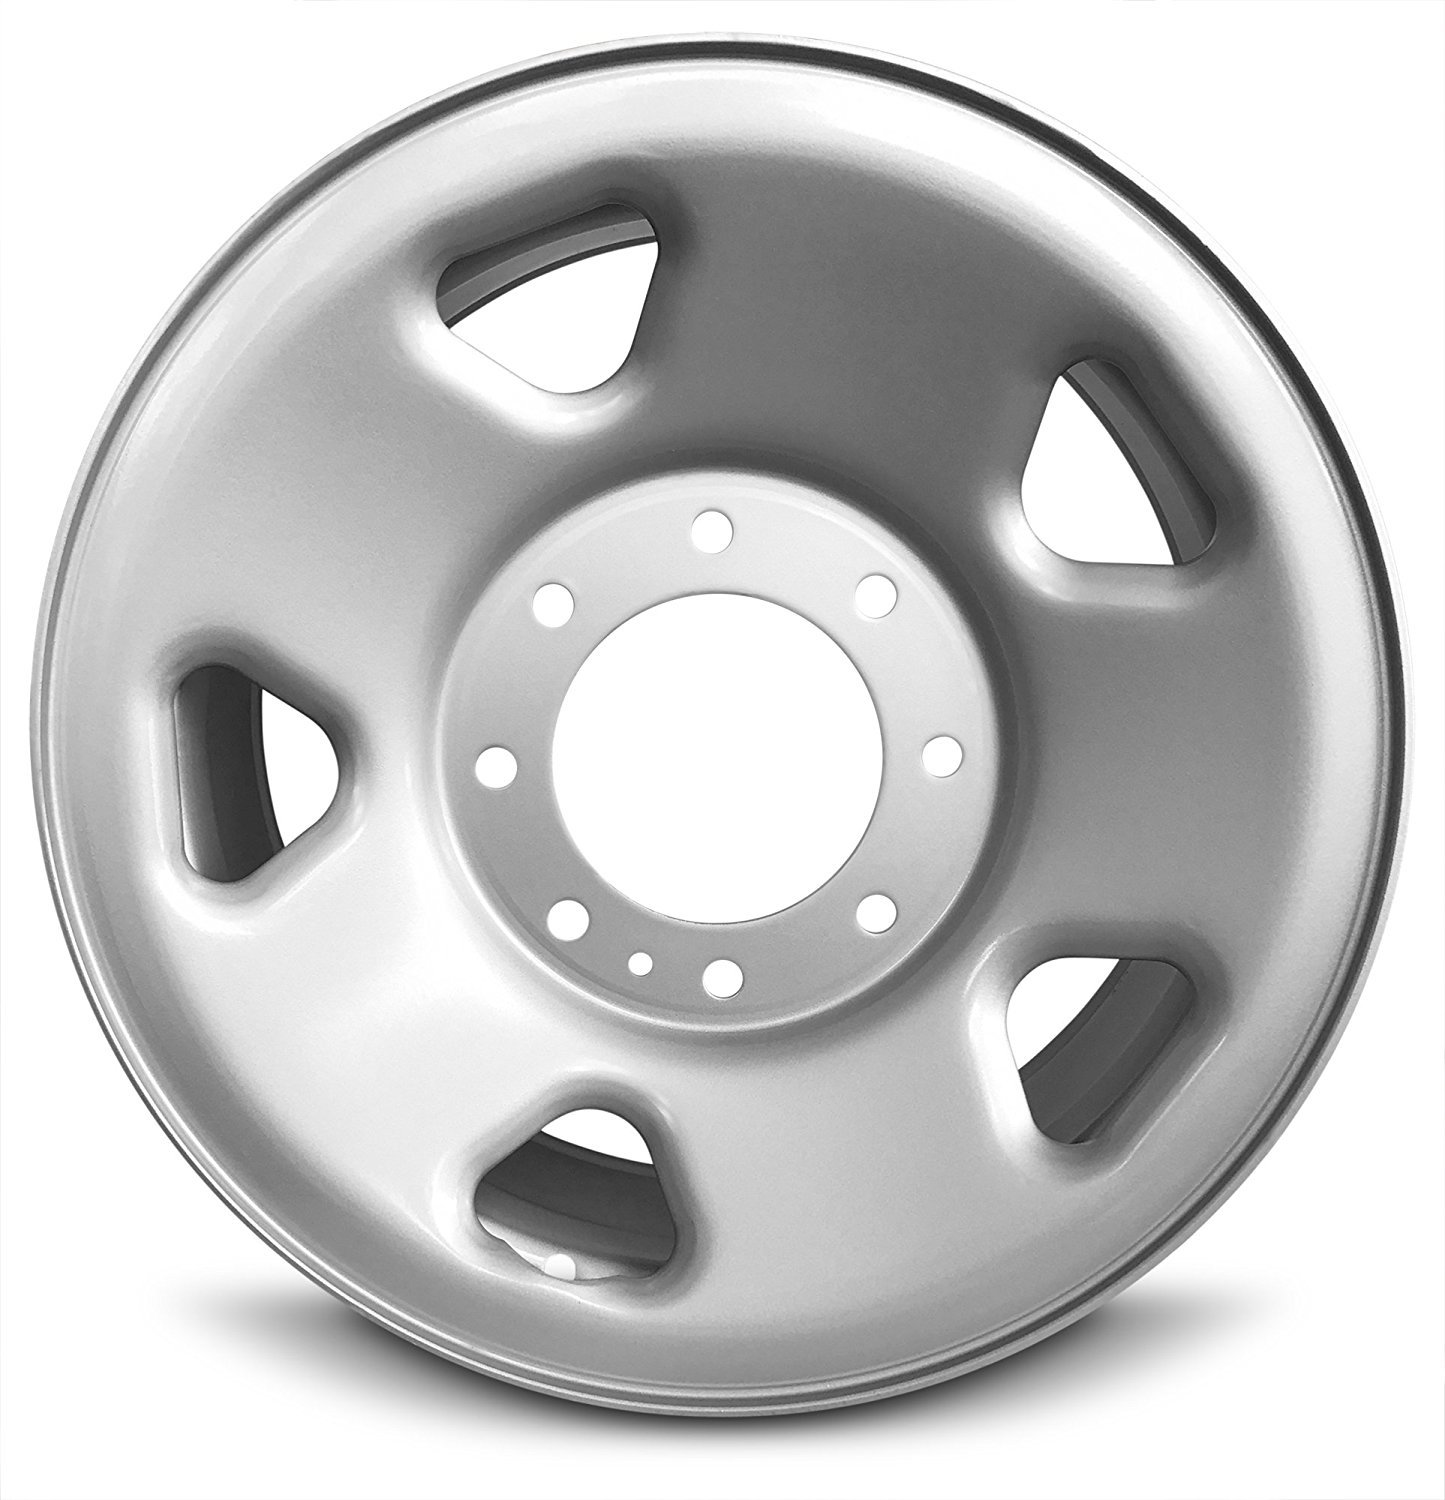 Road Ready Car Wheel For 08-18 Dodge Ram 4500 Ram 5500 19.5 Inch 10 Lug Steel Rim Fits R19.5 Tire Exact OEM Replacement Full-Size Spare